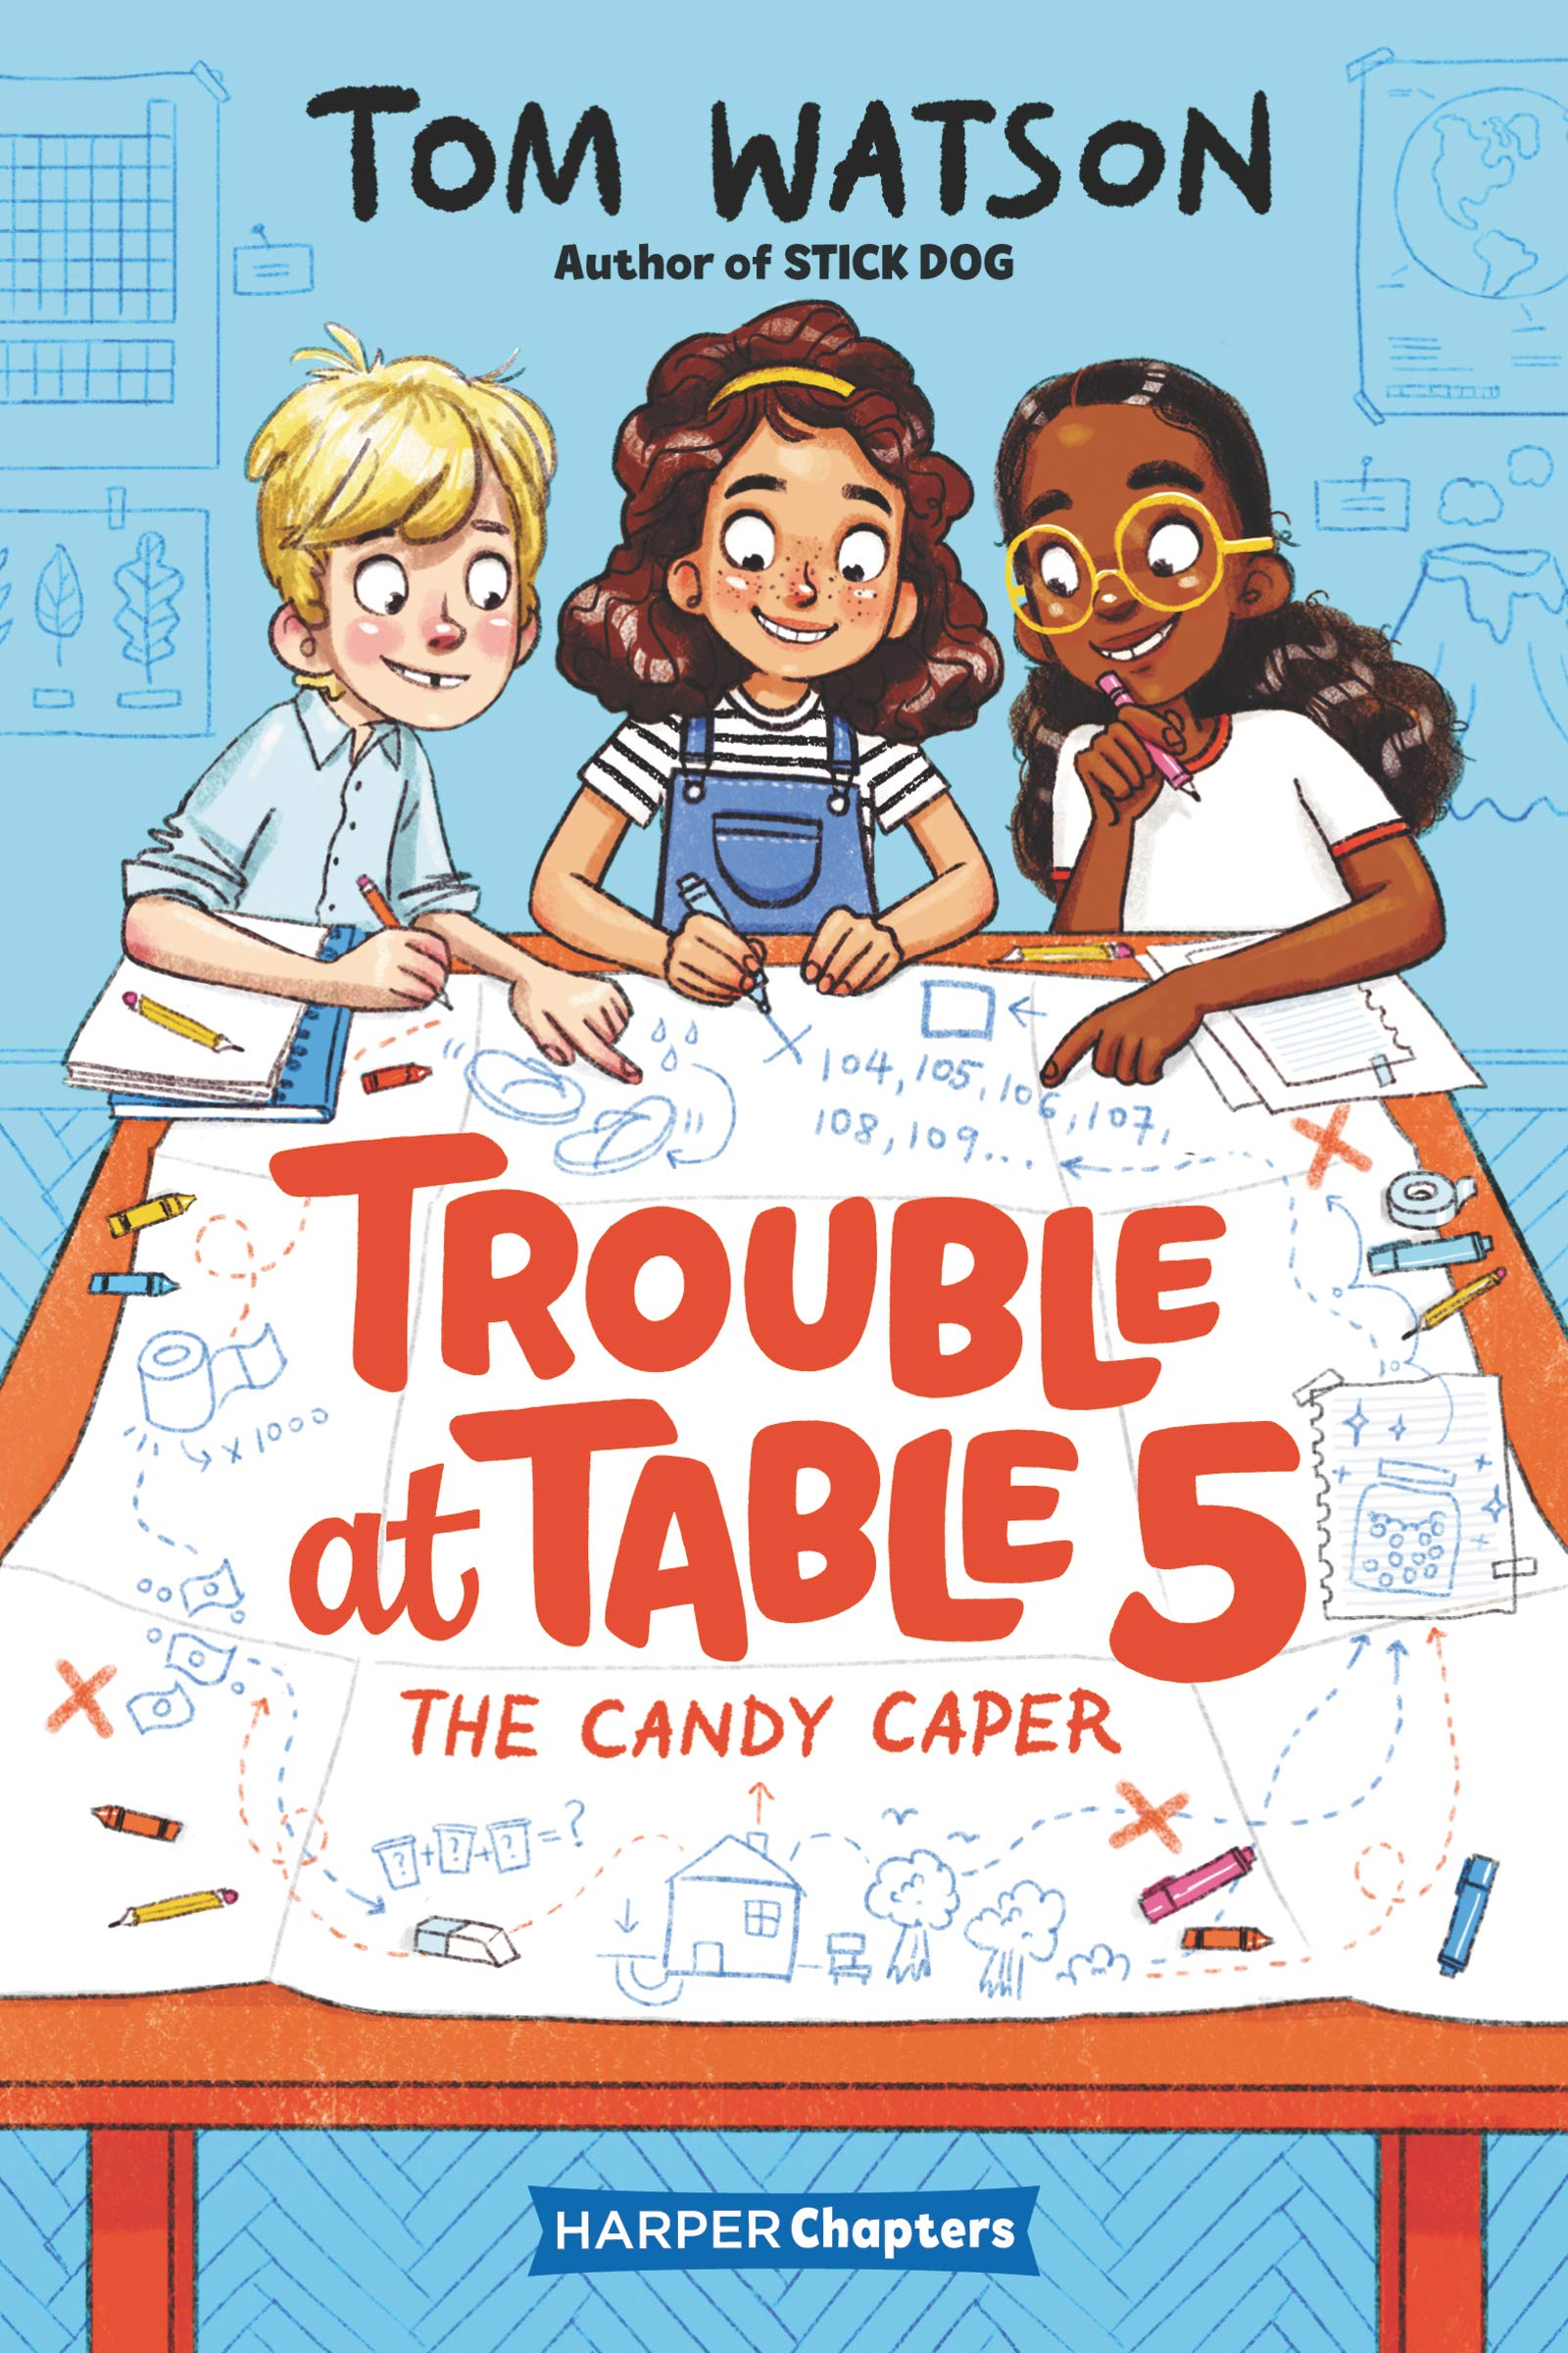 Trouble at Table 5 #1: The Candy Caper (HarperChapters)